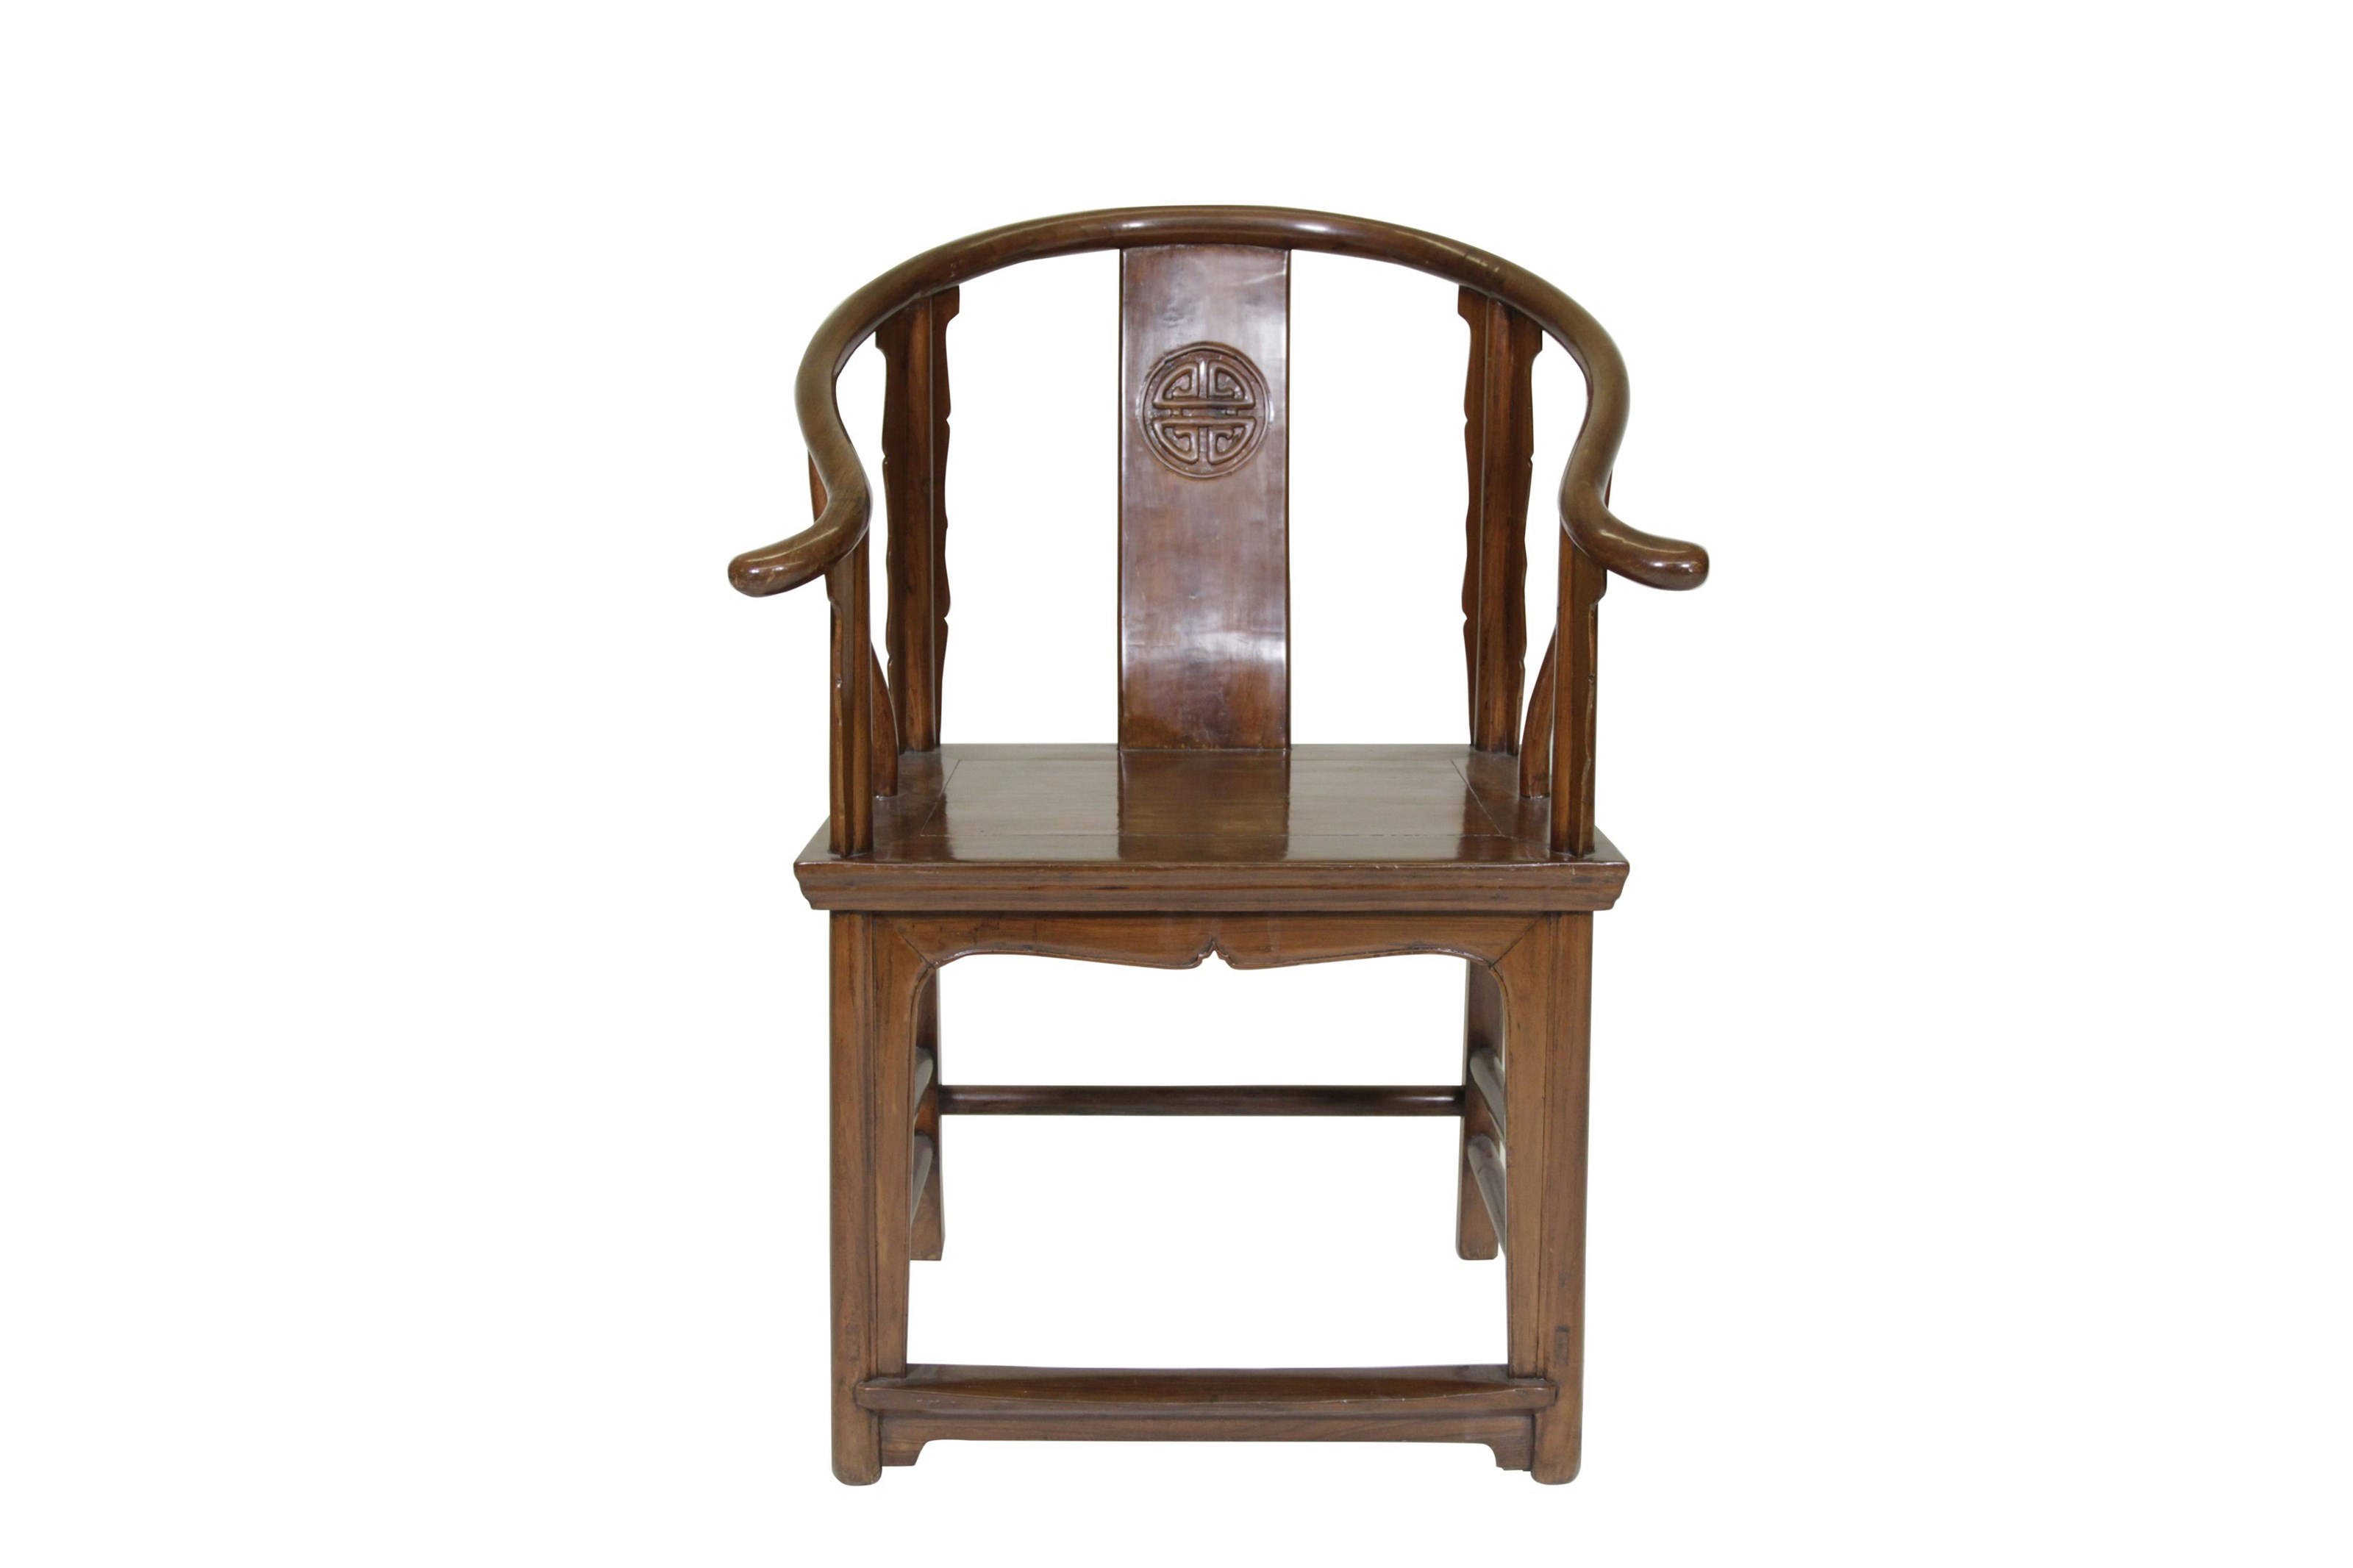 Chair by C.S. Wo & Sons Antiques at C. S. Wo & Sons Hawaii